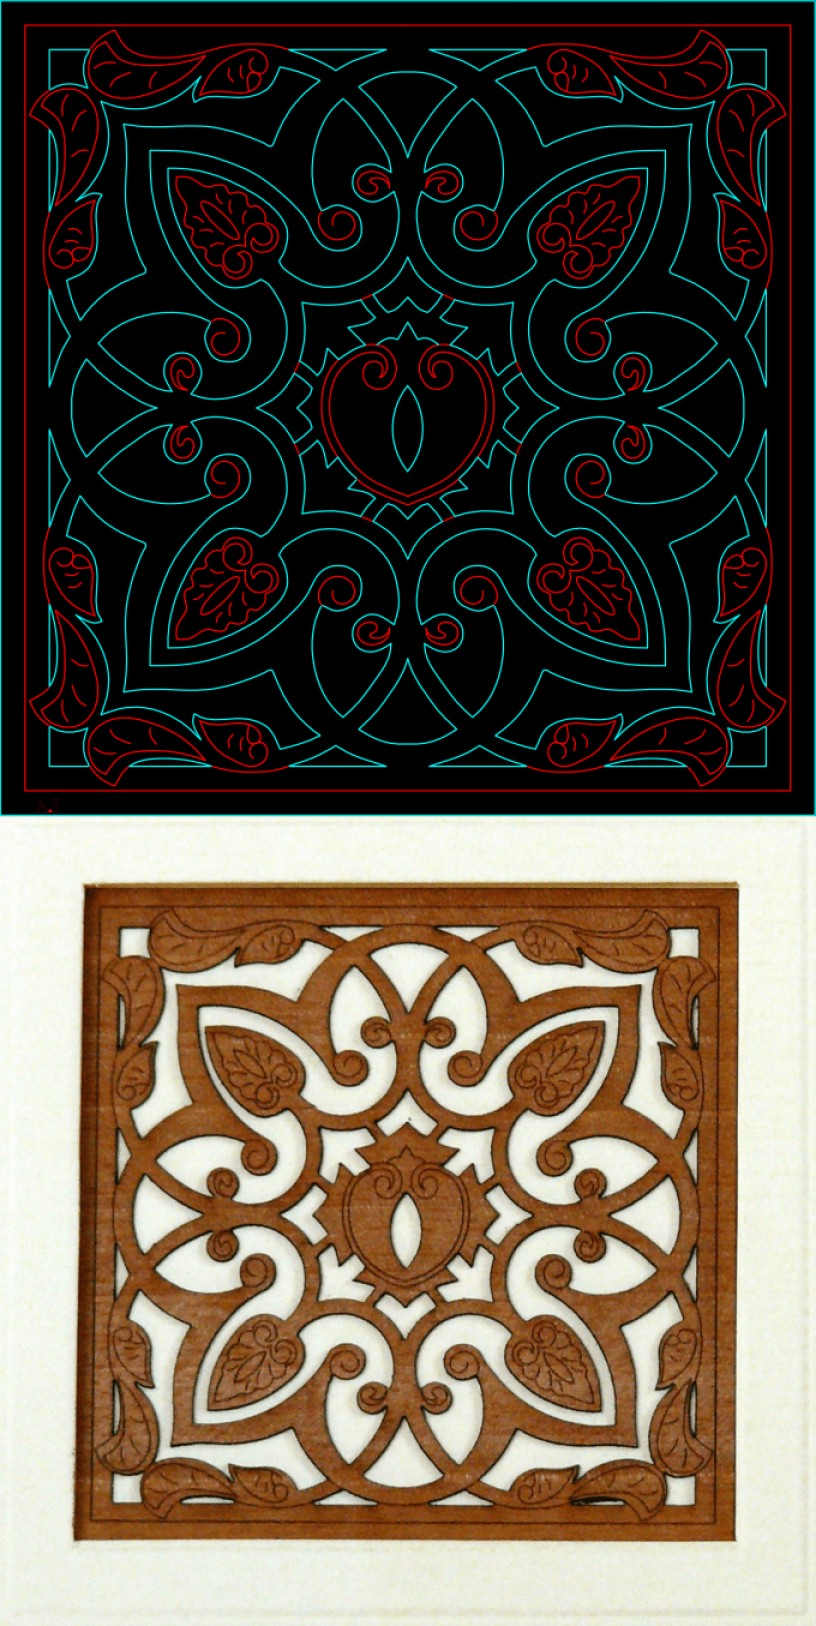 2D Vector Art For CNC Cutters: Do Shop Drawings For A Milling Machine Cnc Router Or A Laser Cutter